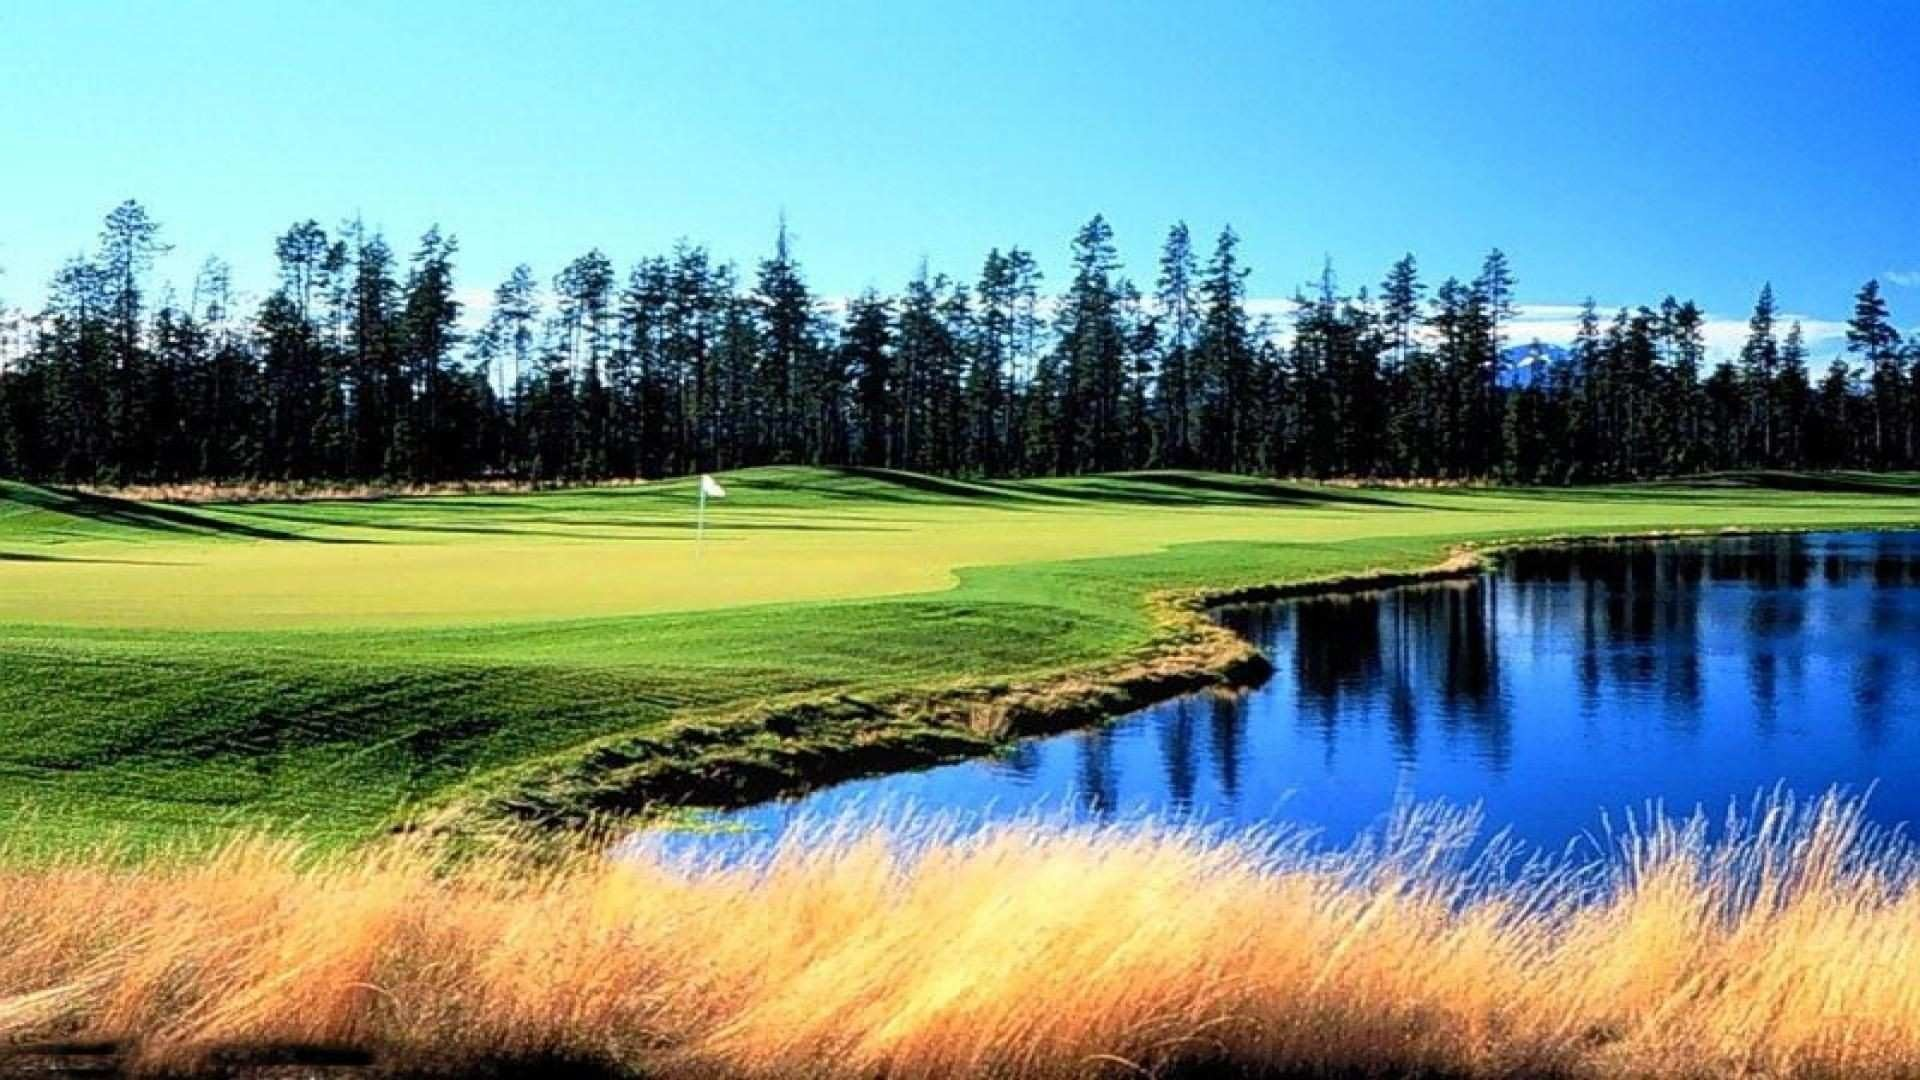 Cool golf backgrounds 66 pictures - Golf wallpaper hd ...